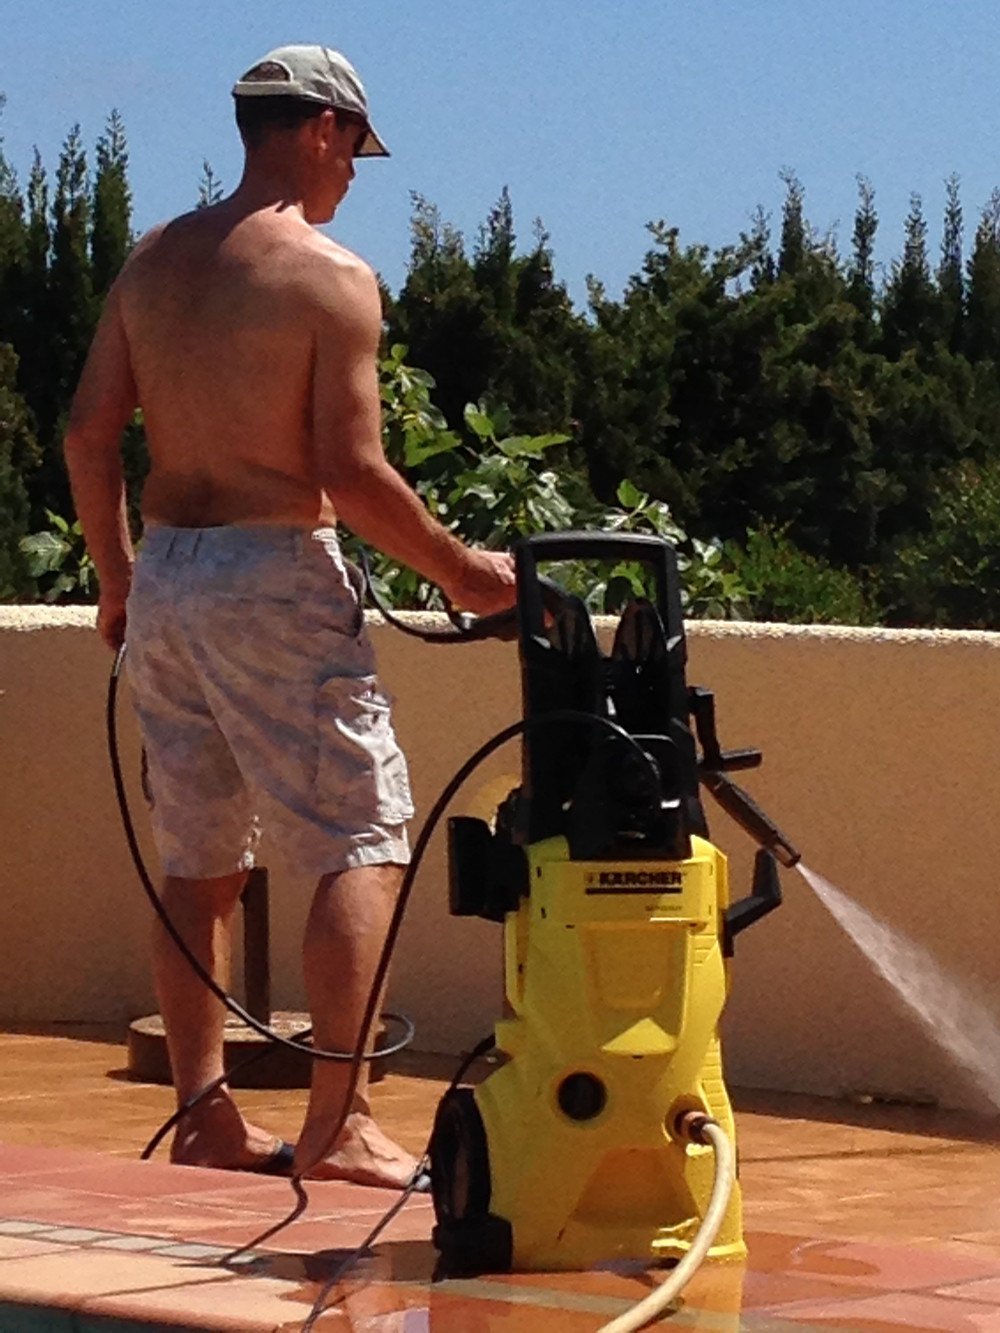 Home from home - jetwashing!